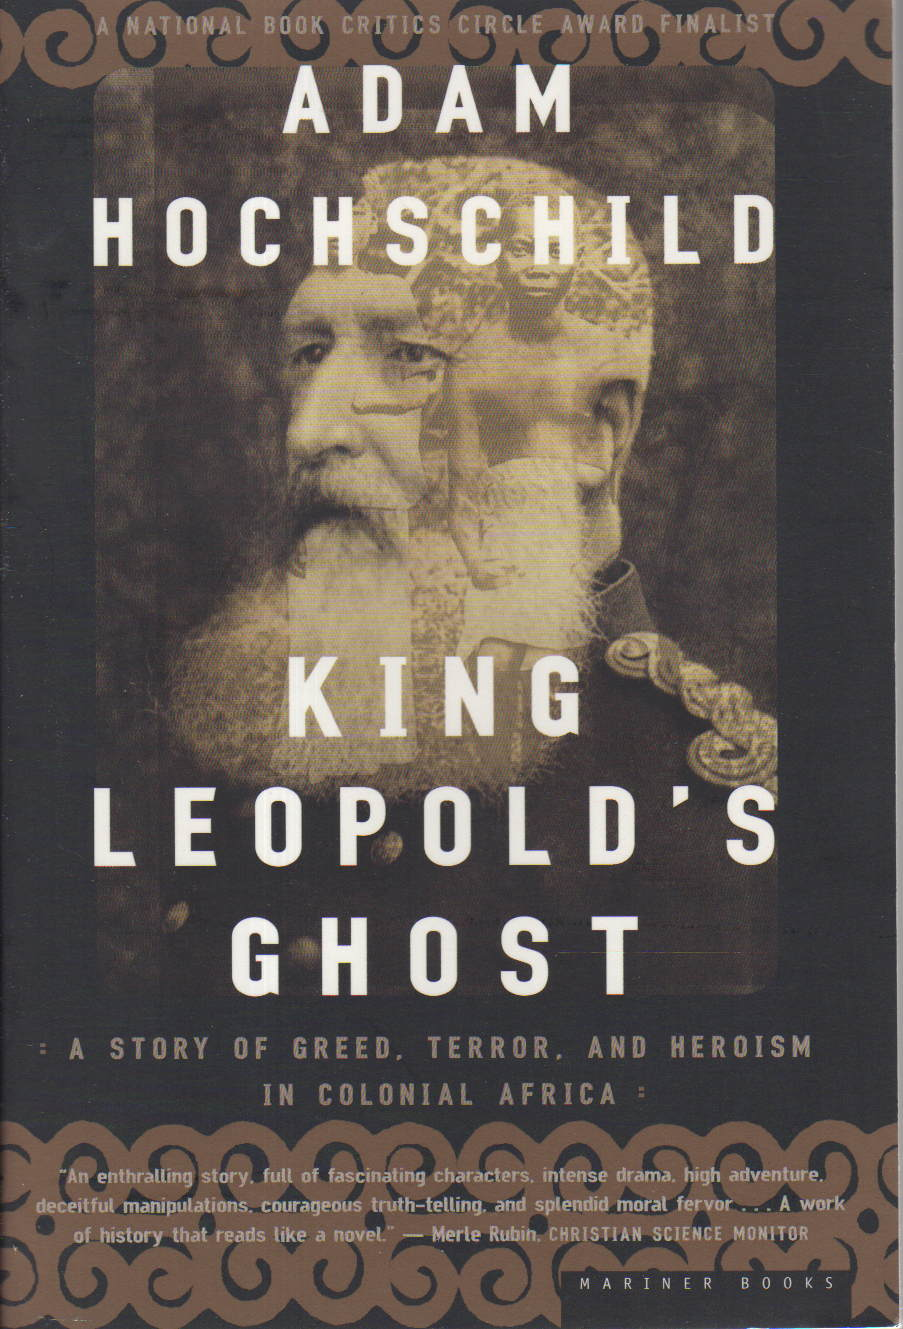 King Leopold's Ghost: A Story of Greed, Terror, and Heroism in Colonial Africa, Adam Hochschild, Mariner Books